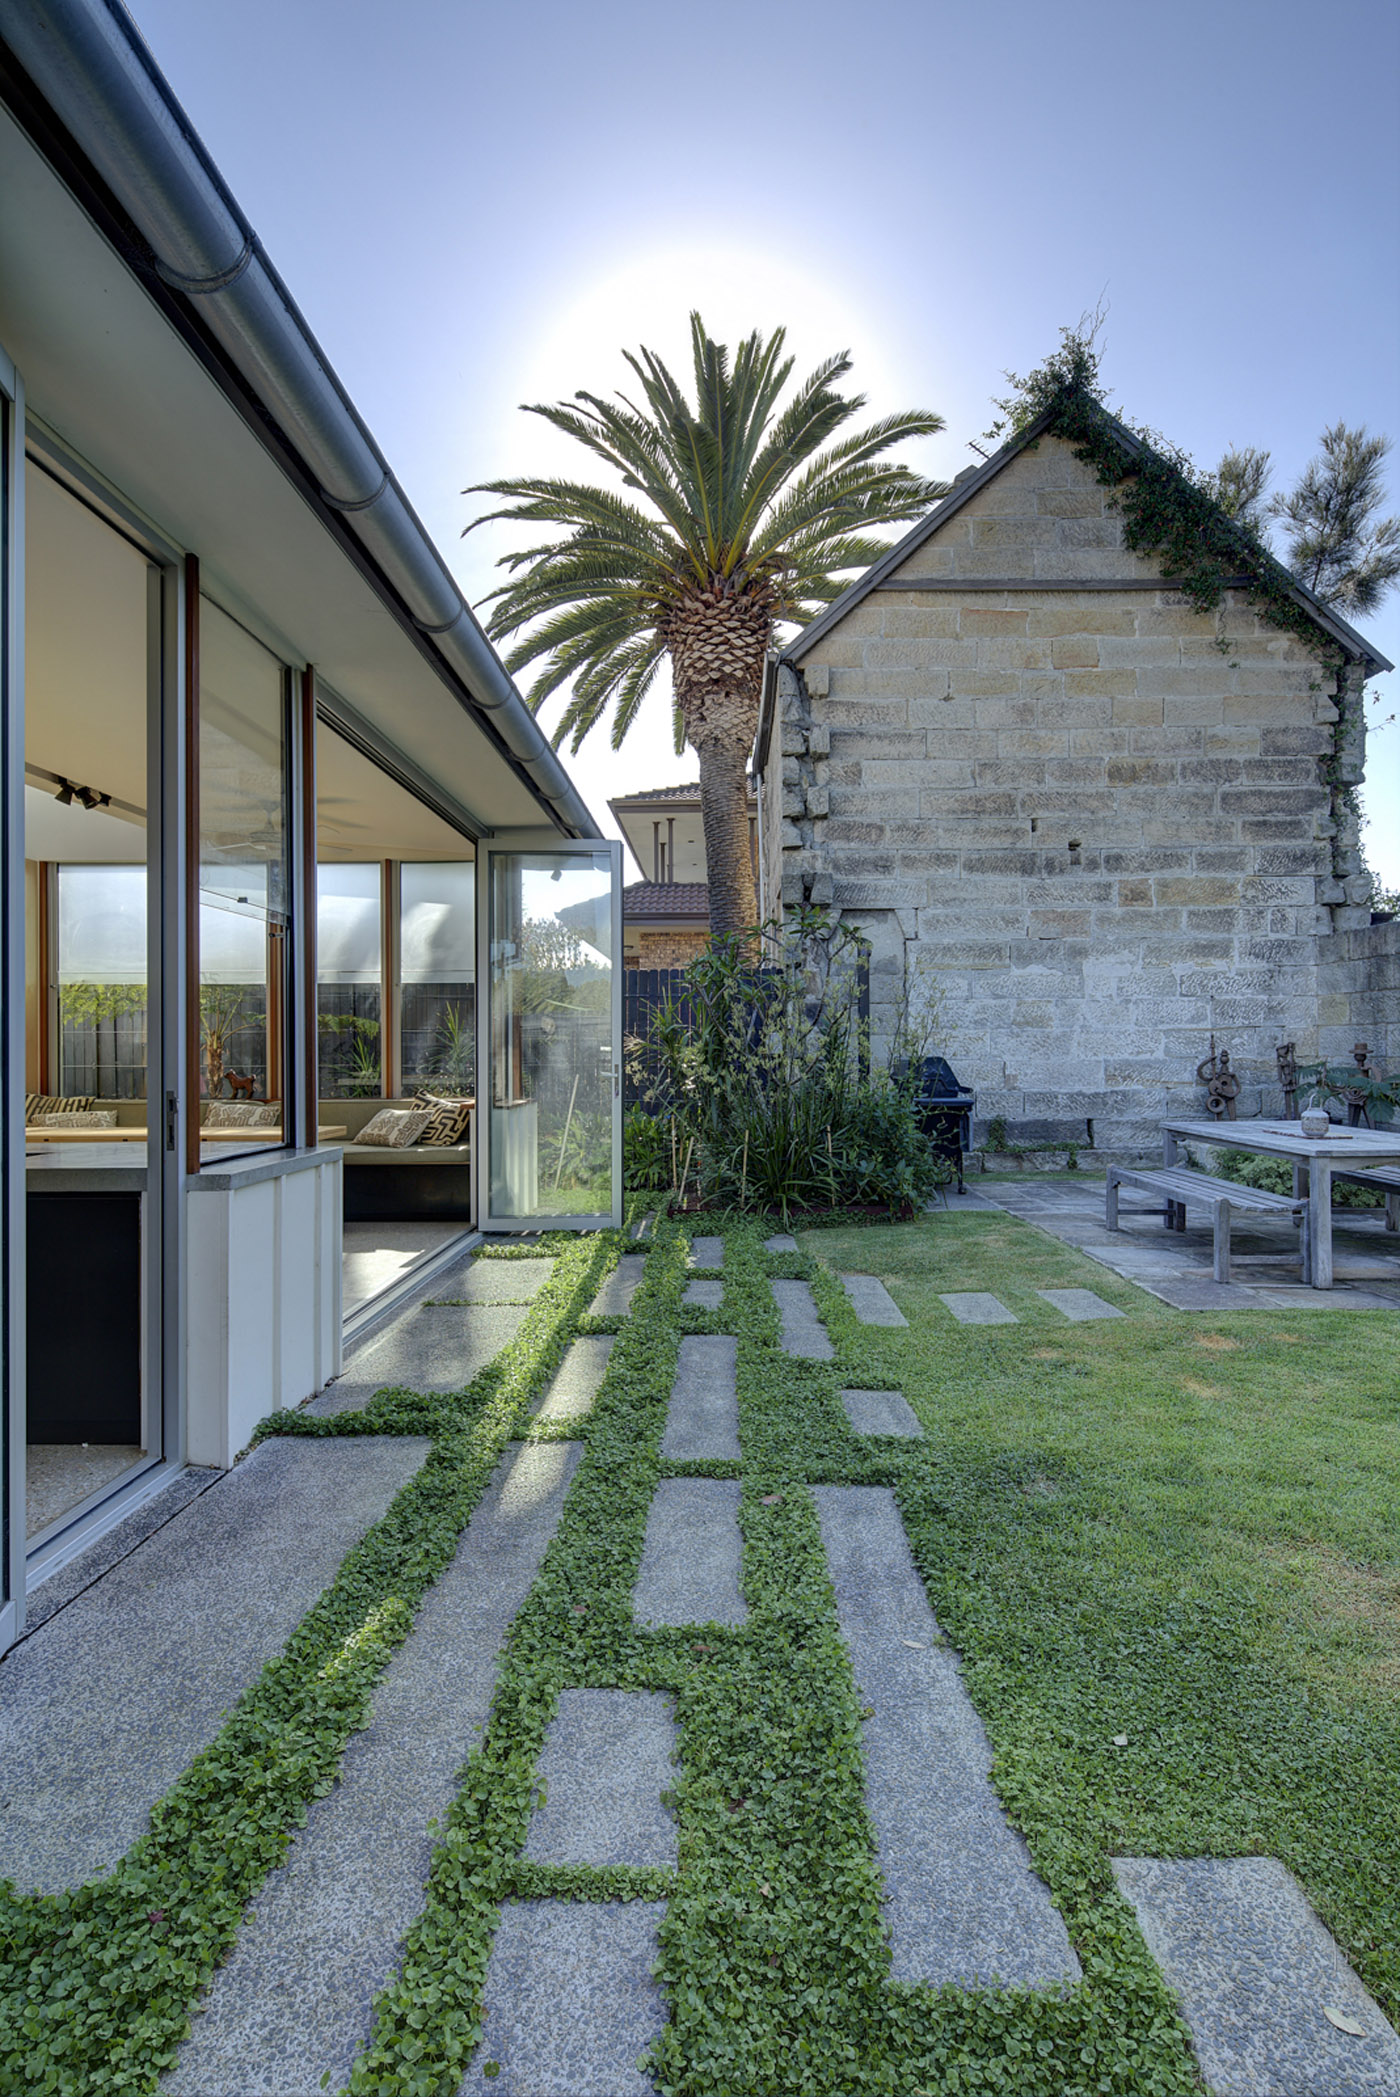 Salgo Kitching House by Sydney award winning architecture office Sam Crawford Architects. View from backyard to heritage listed neighbouring house